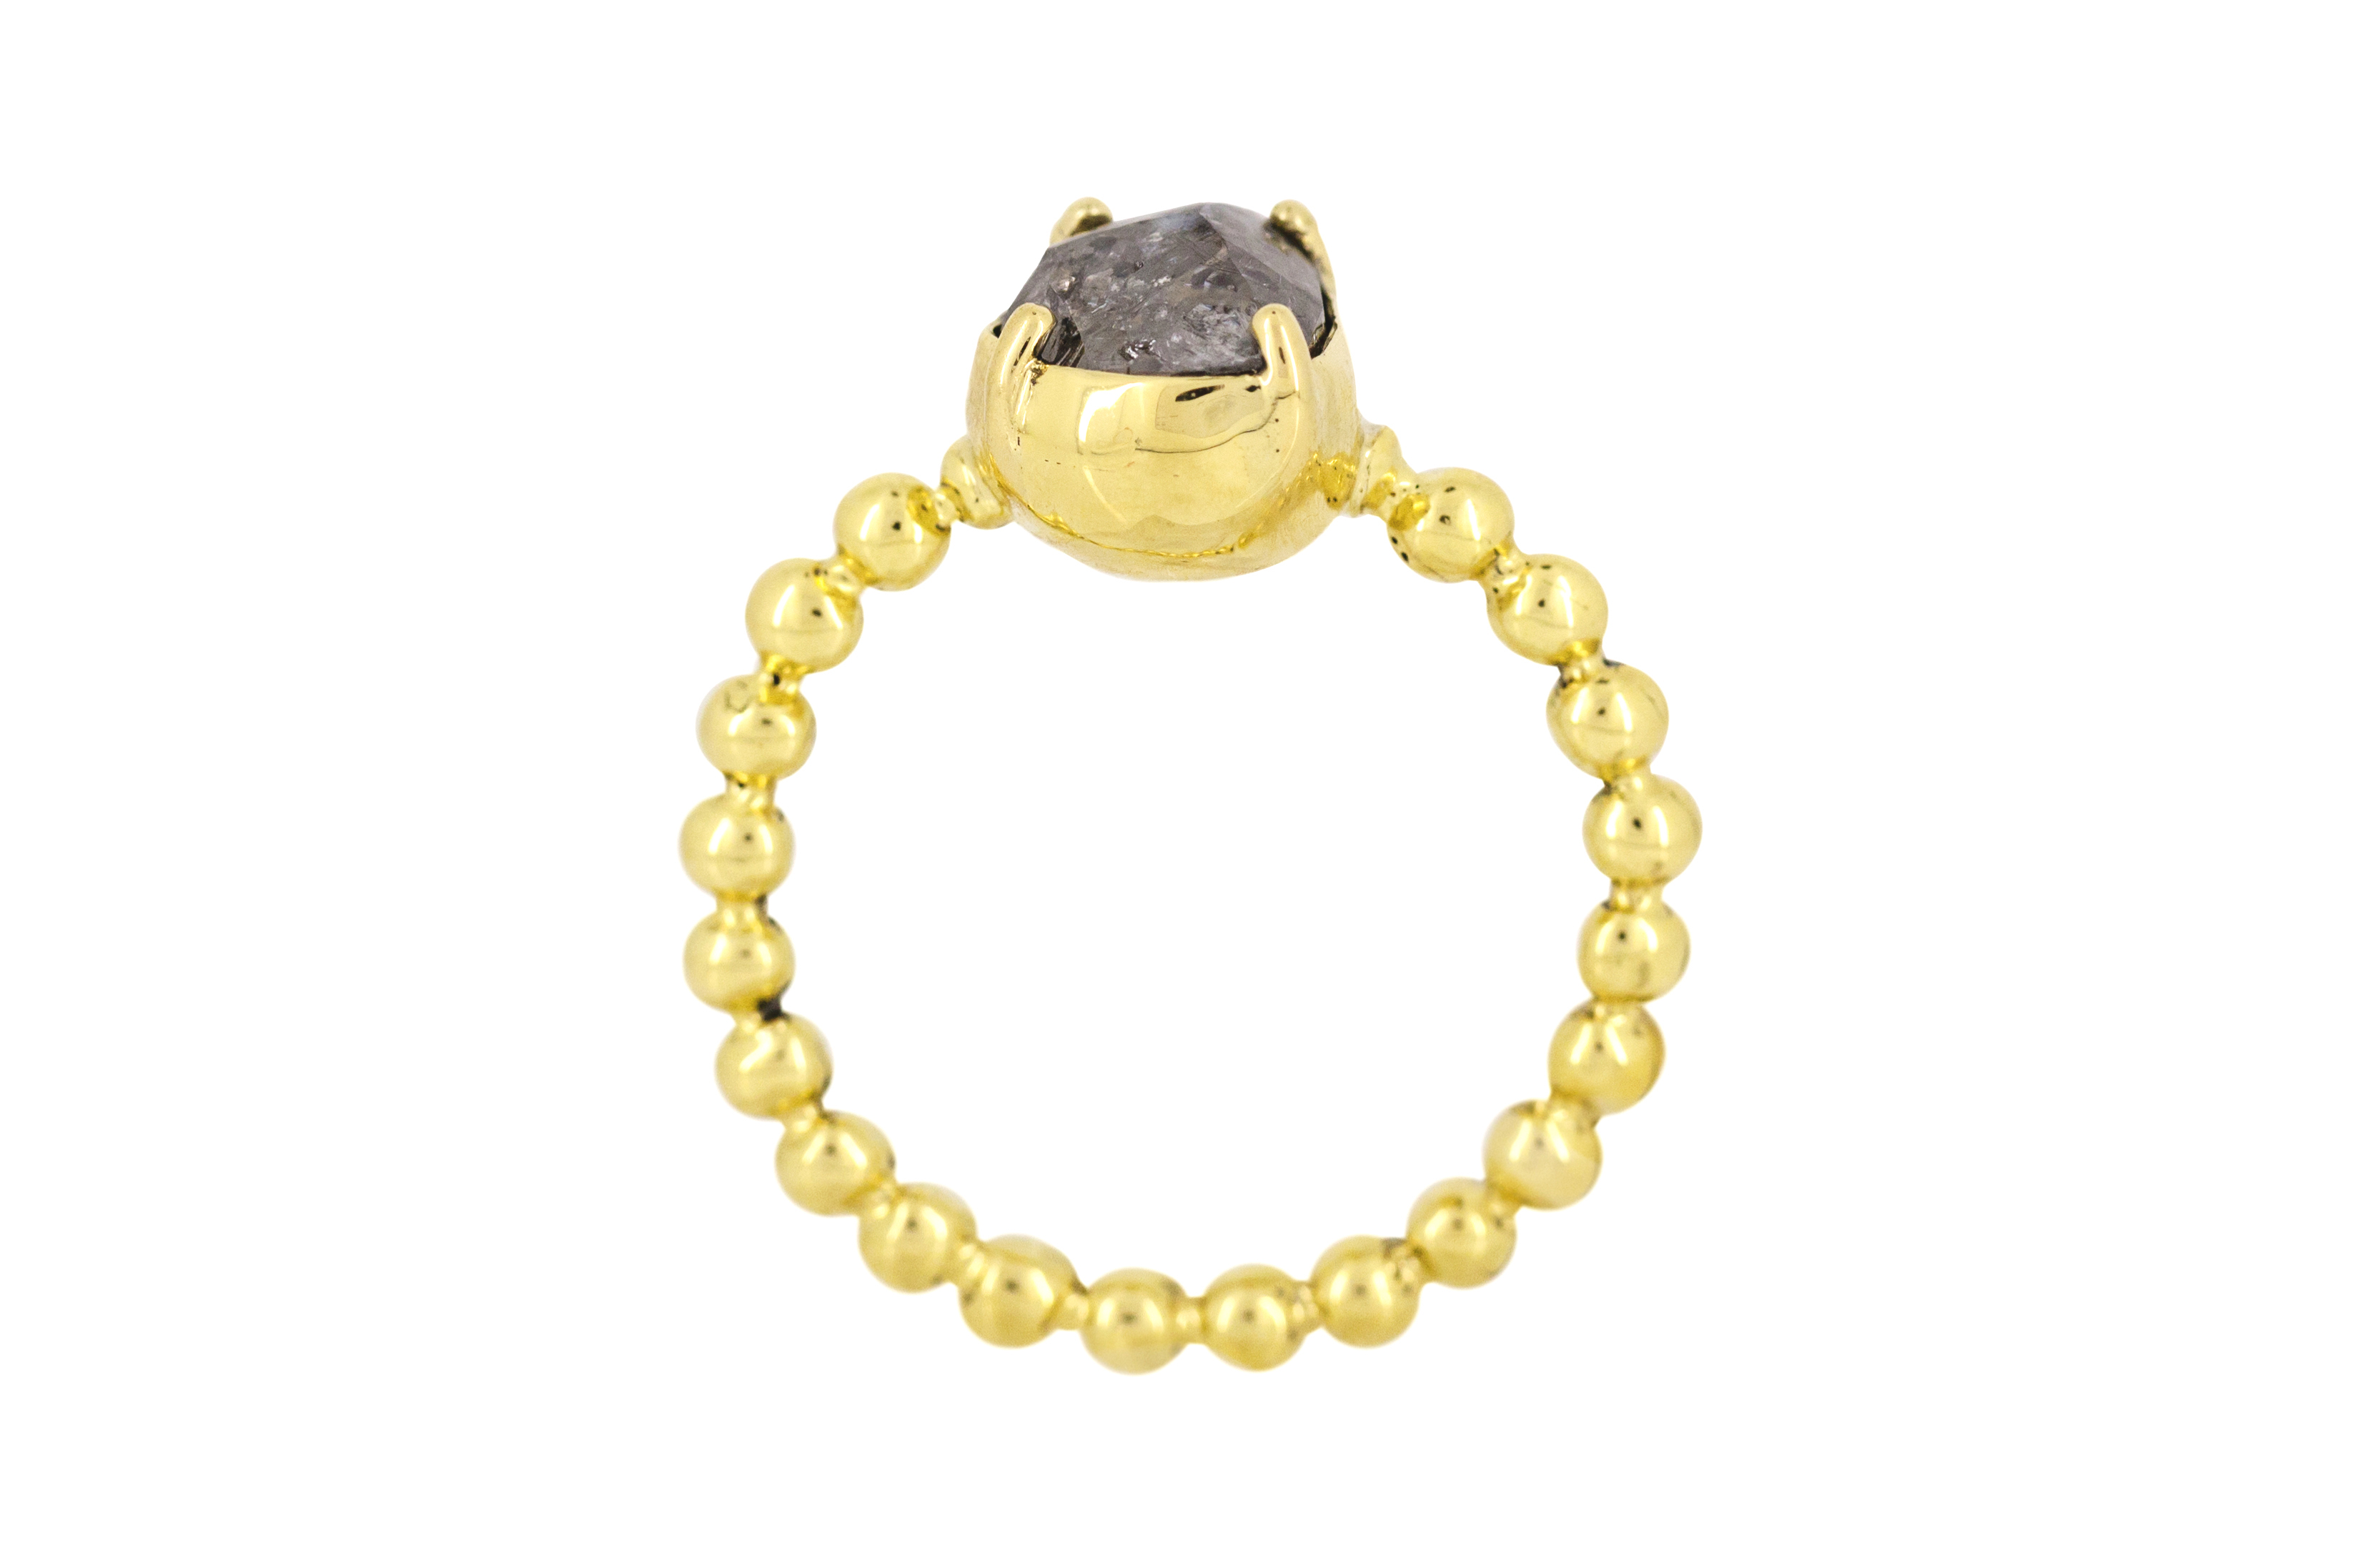 BO-KAAP in 18ct Yellow Gold